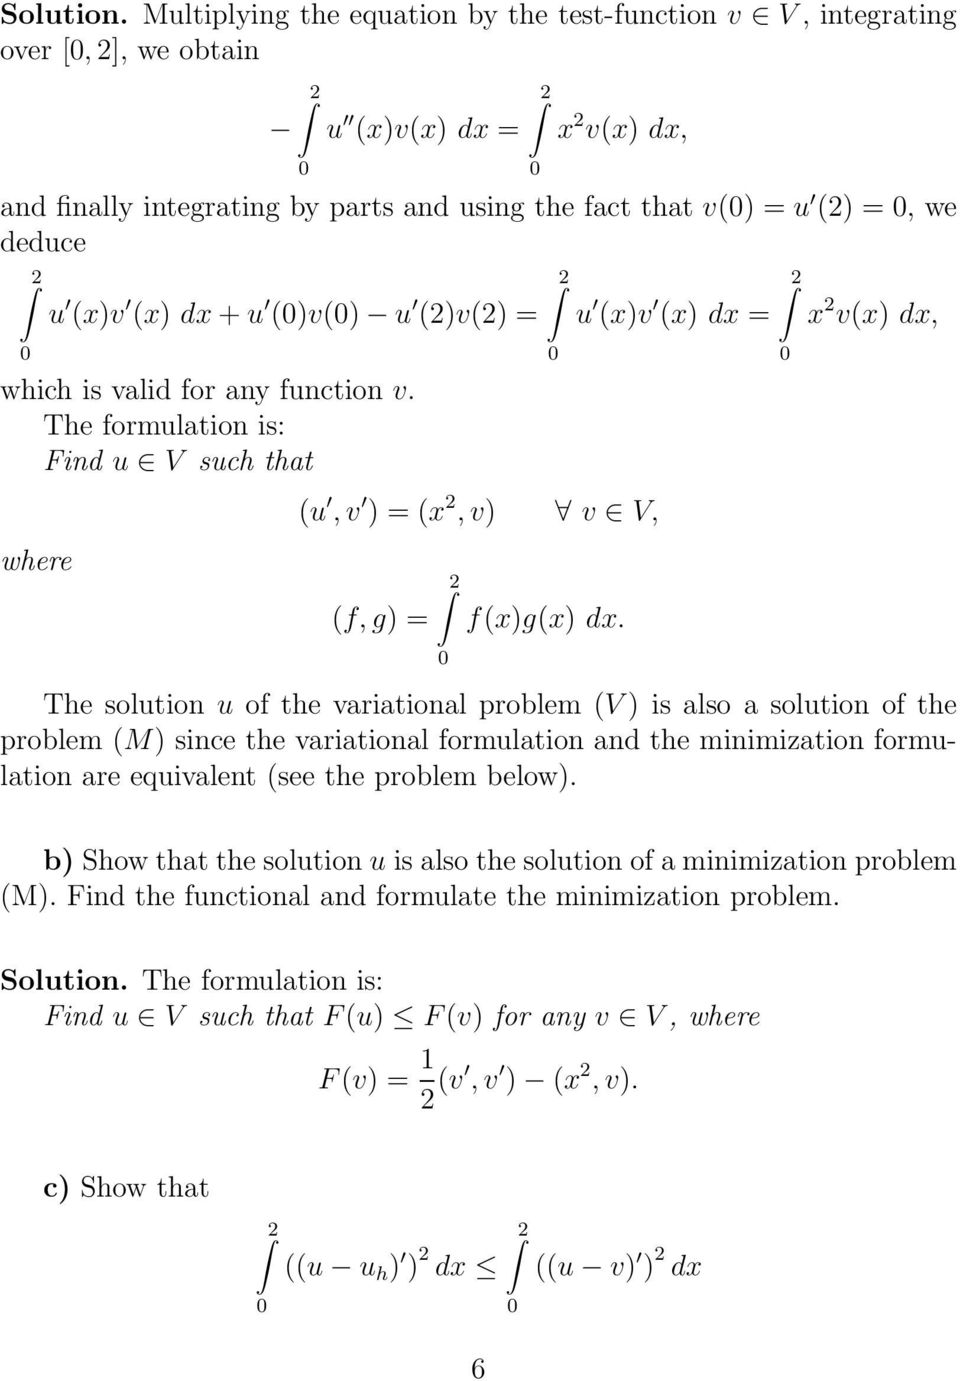 The solution u of the variational problem V ) is also a solution of the problem M) since the variational formulation and the minimization formulation are equivalent see the problem below).